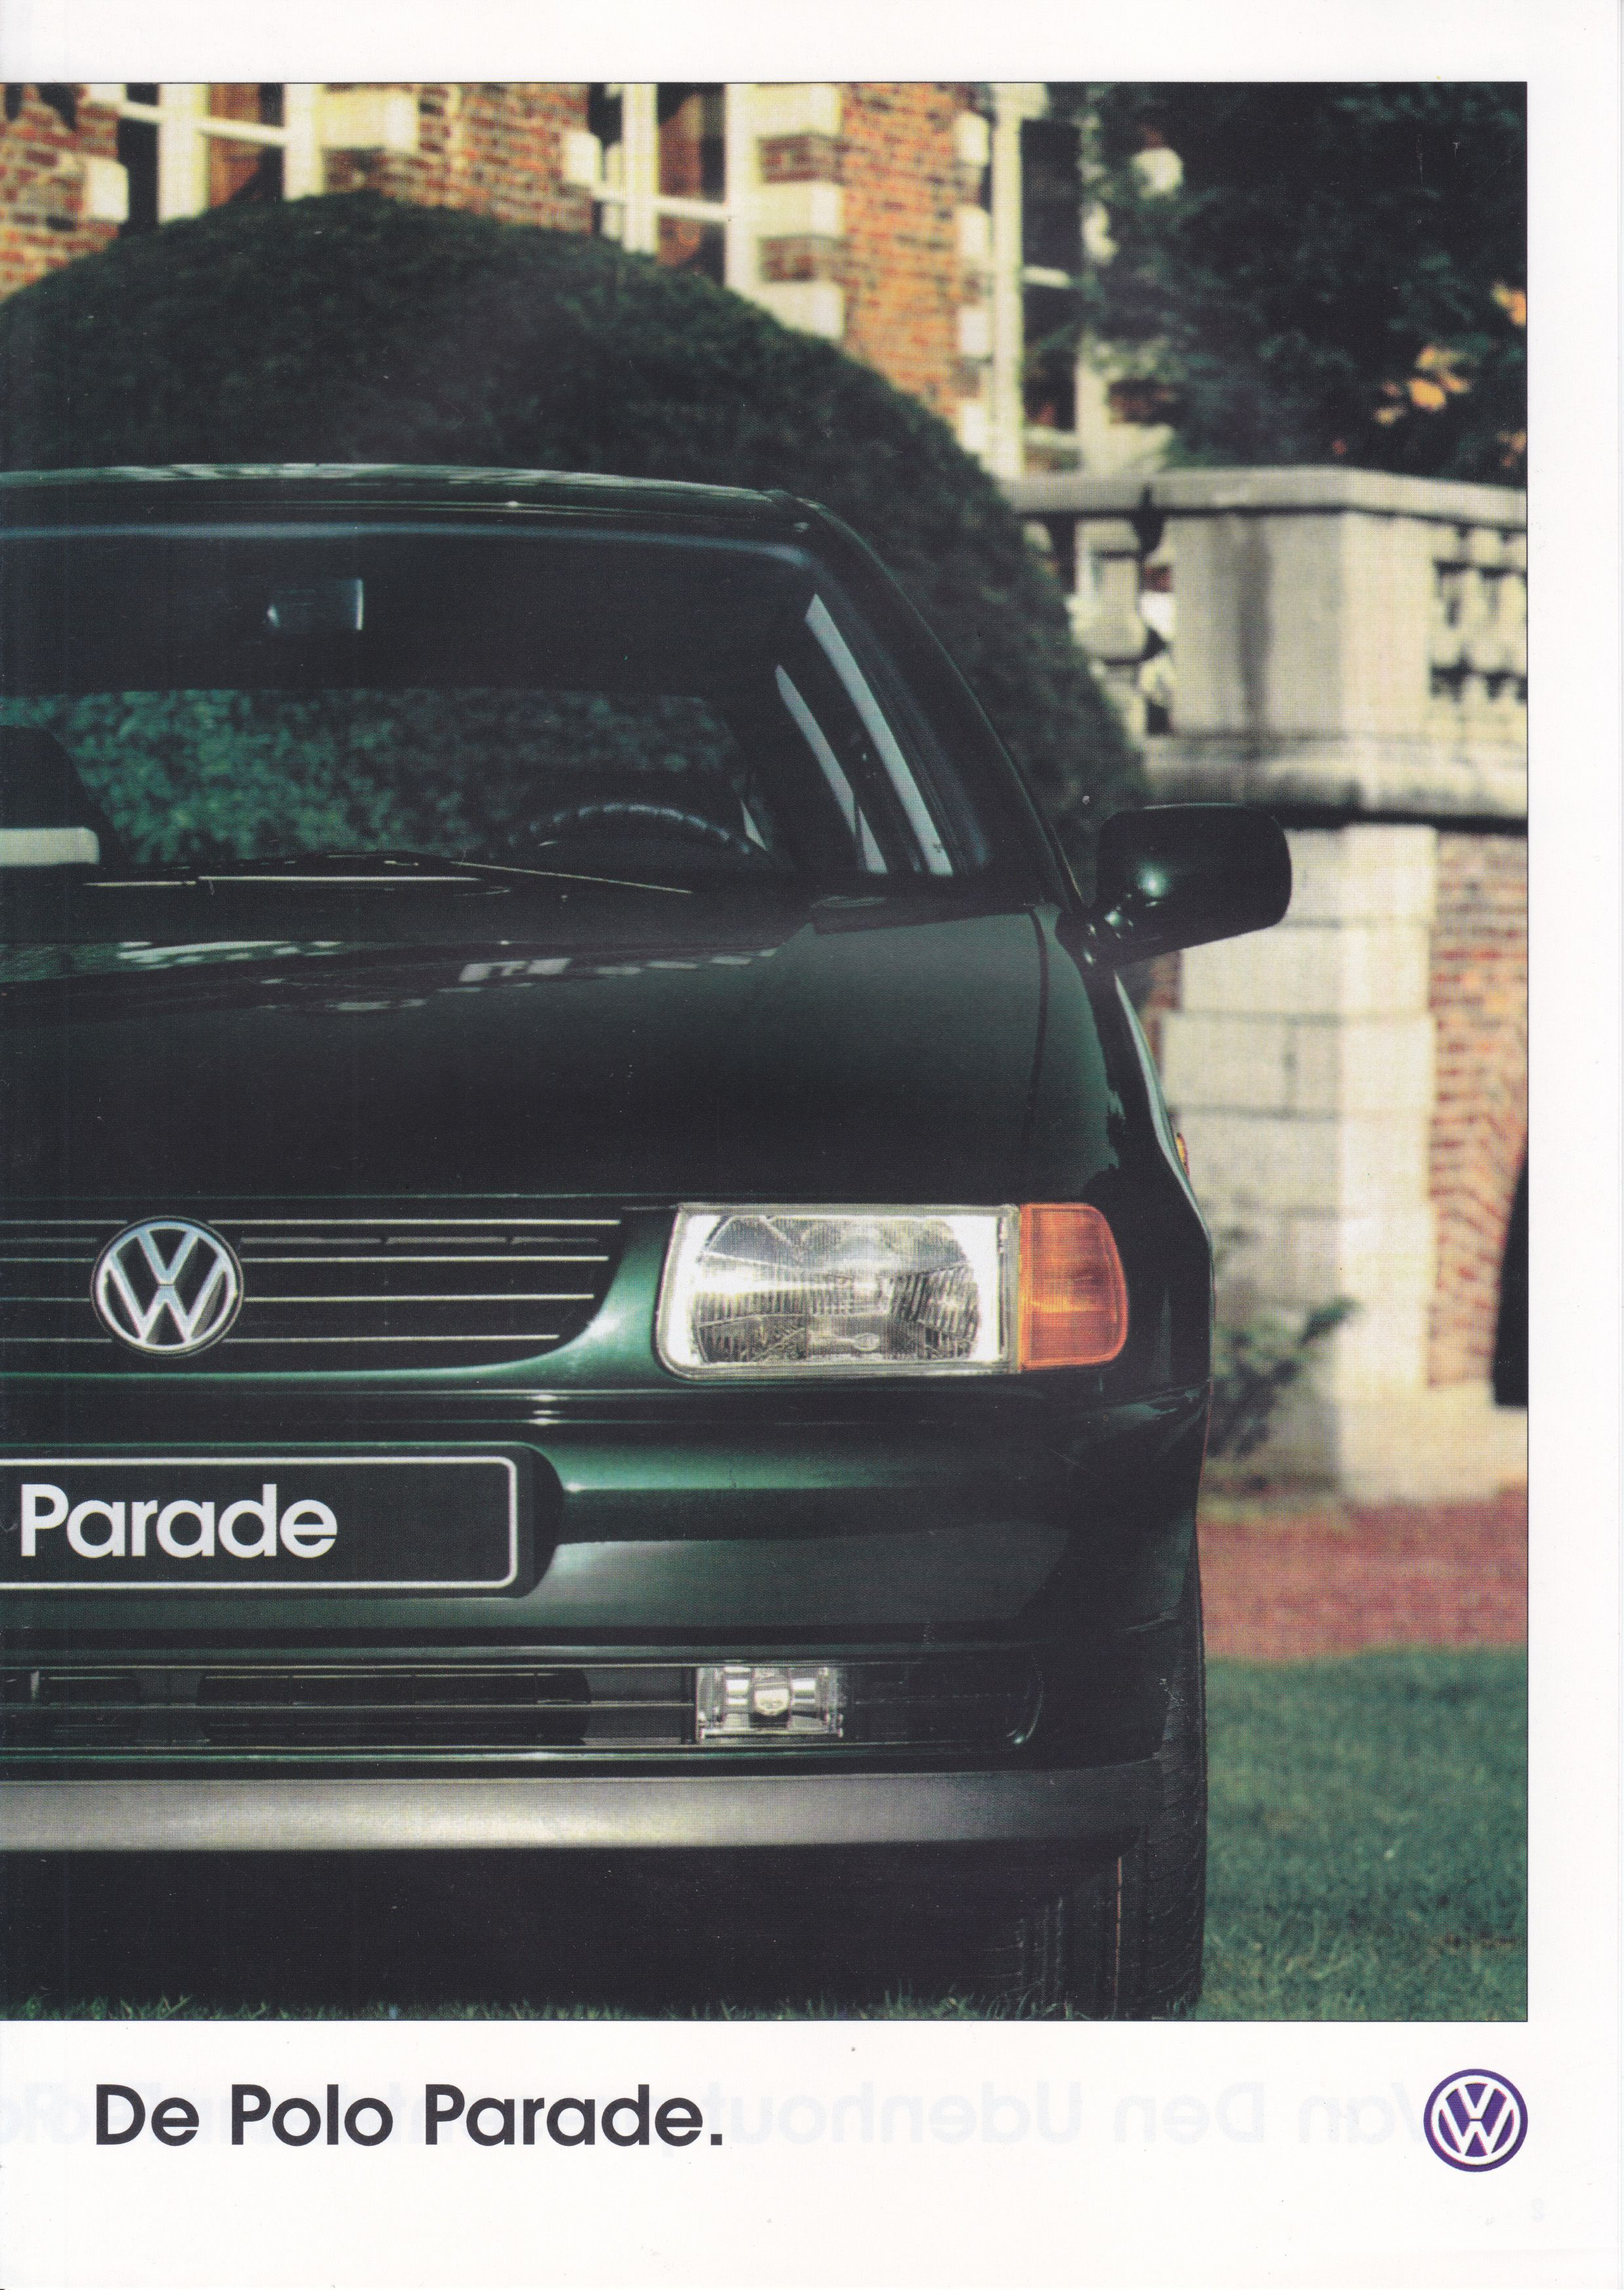 Volkswagen Polo Parade 4 Pages Dutch Special Edition Model 1997 Volkswagen Polo Volkswagen Cars For Sale